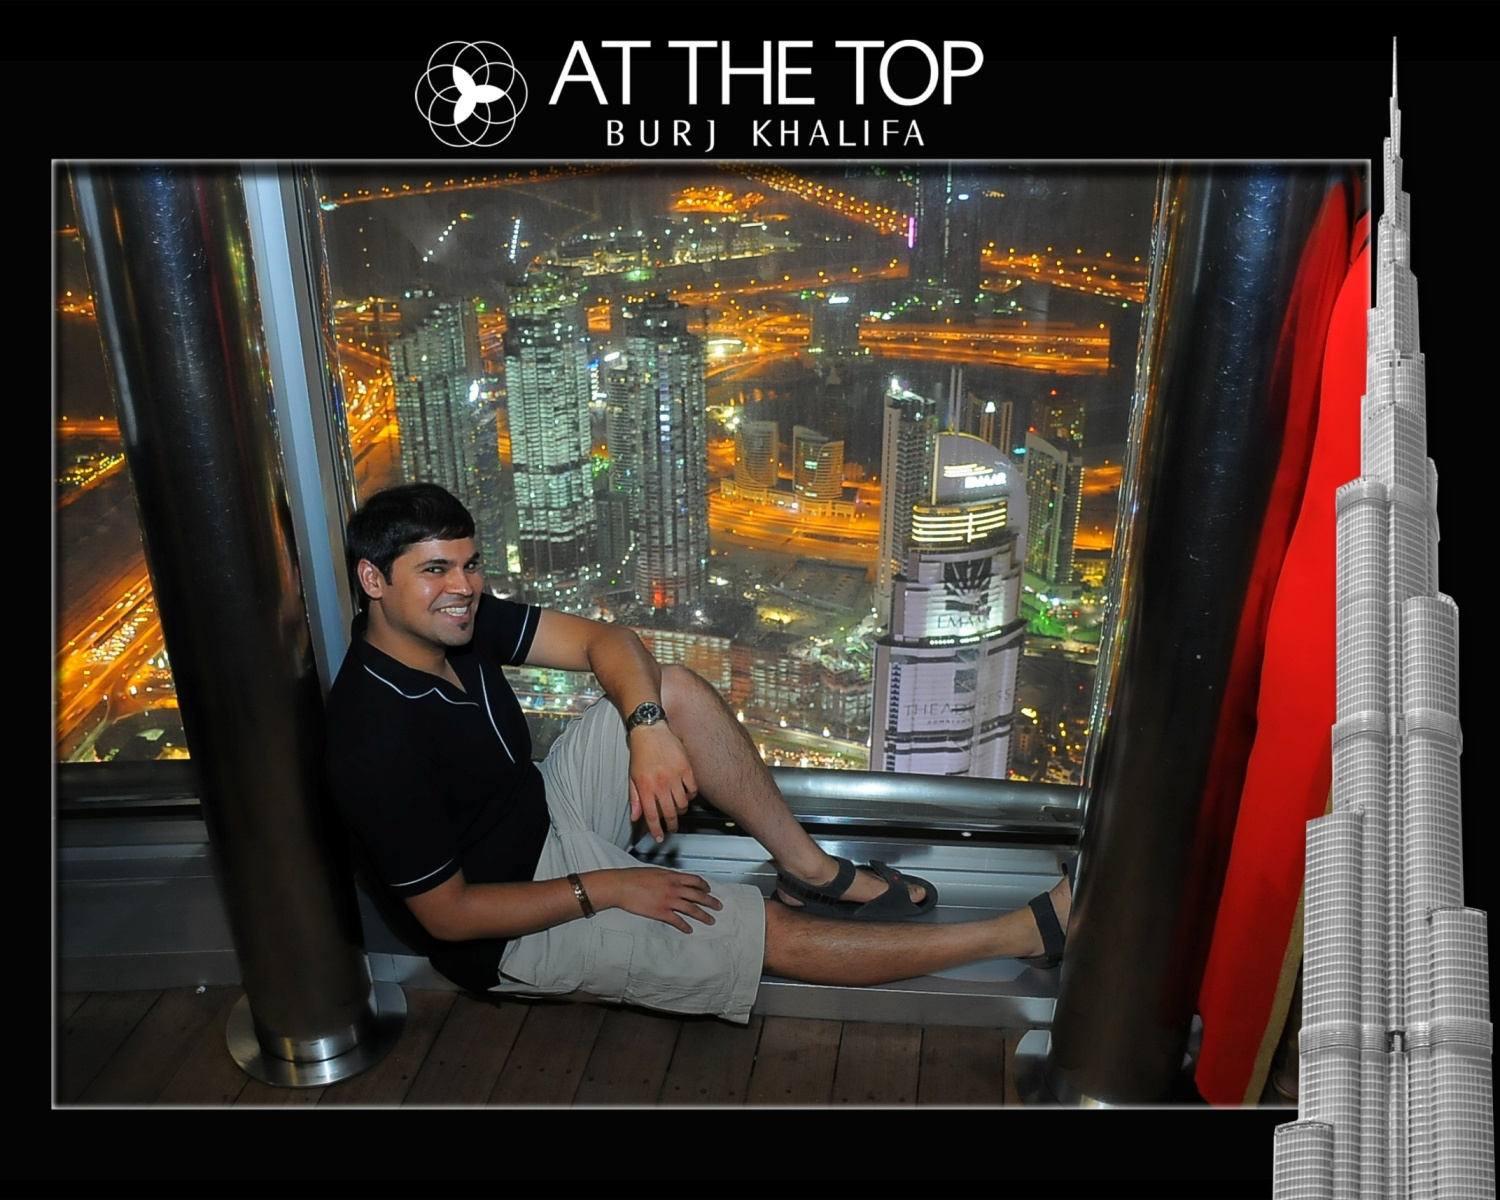 Inside the Burj Khalifa